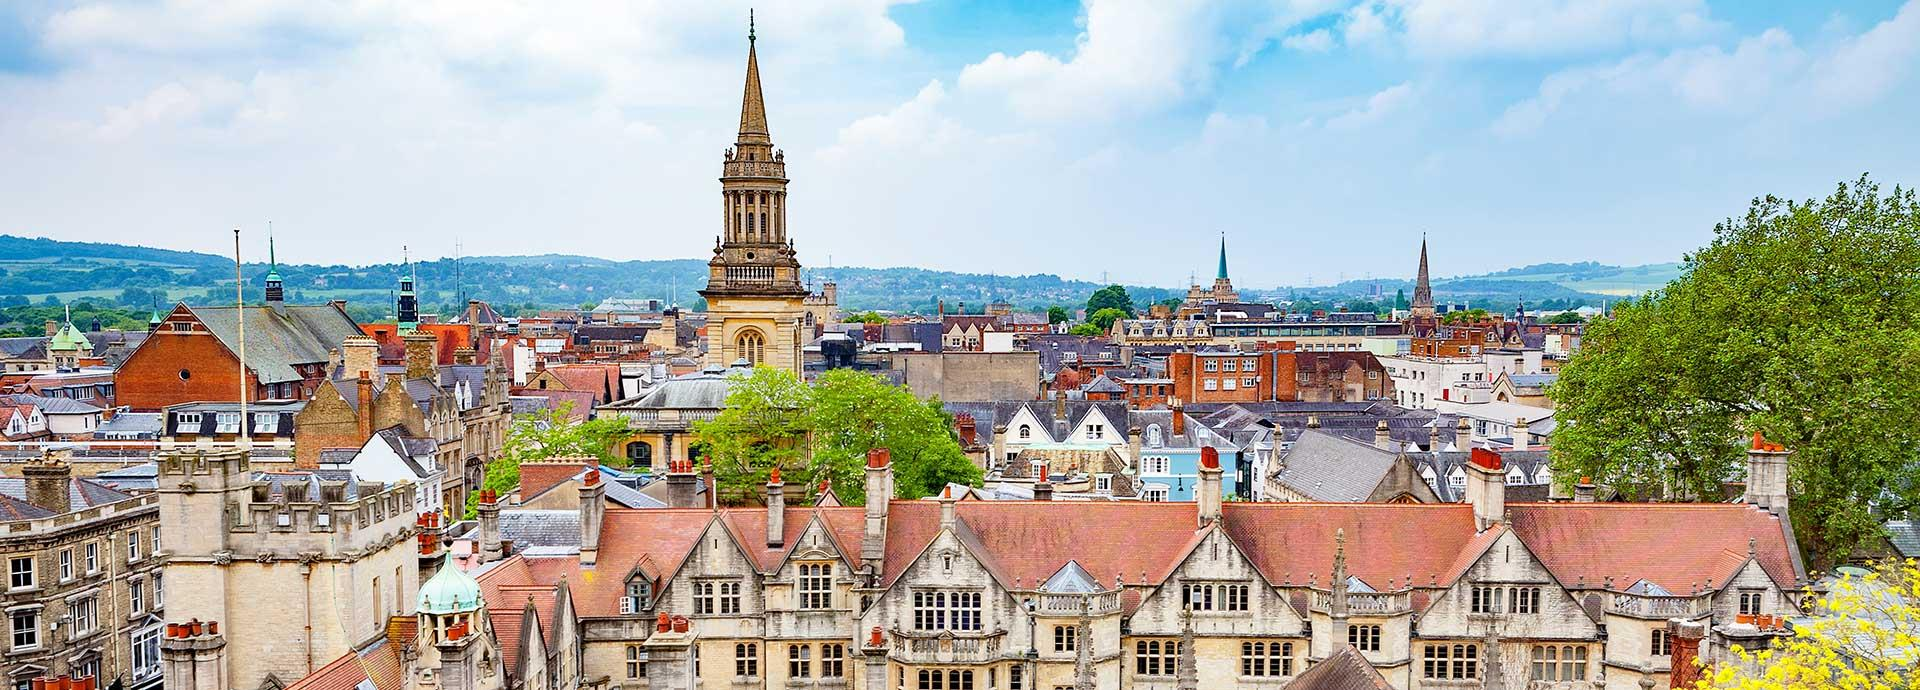 UK charges toward carbon neutrality